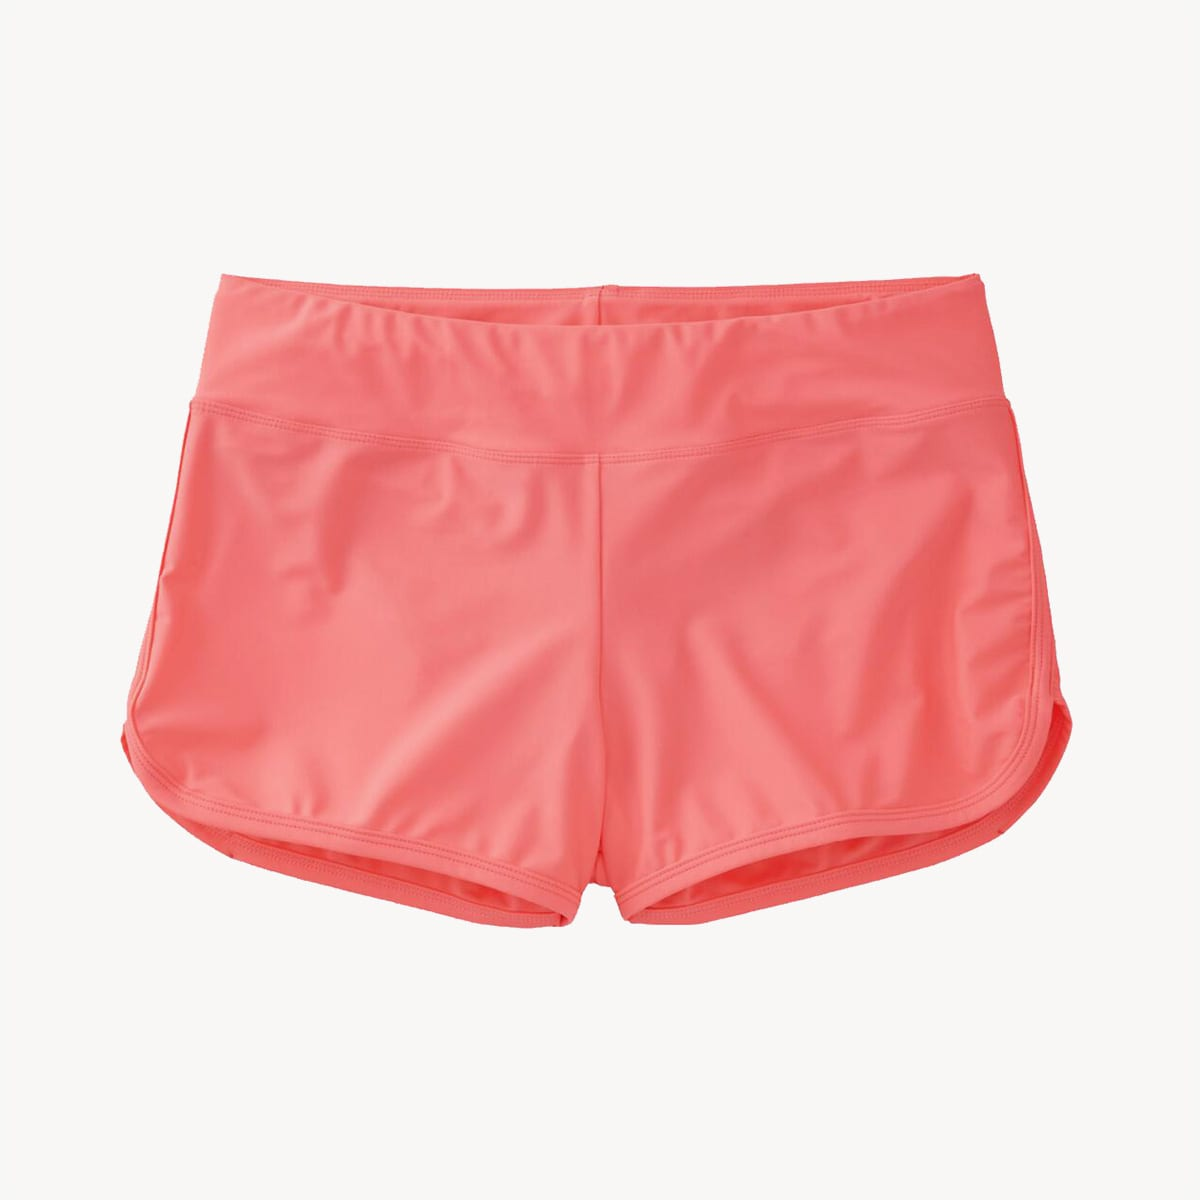 39a74e28e8 They're also a great option for throwing on over your regular swimsuit if  you're traveling somewhere more conservative and need a little extra  coverage on ...